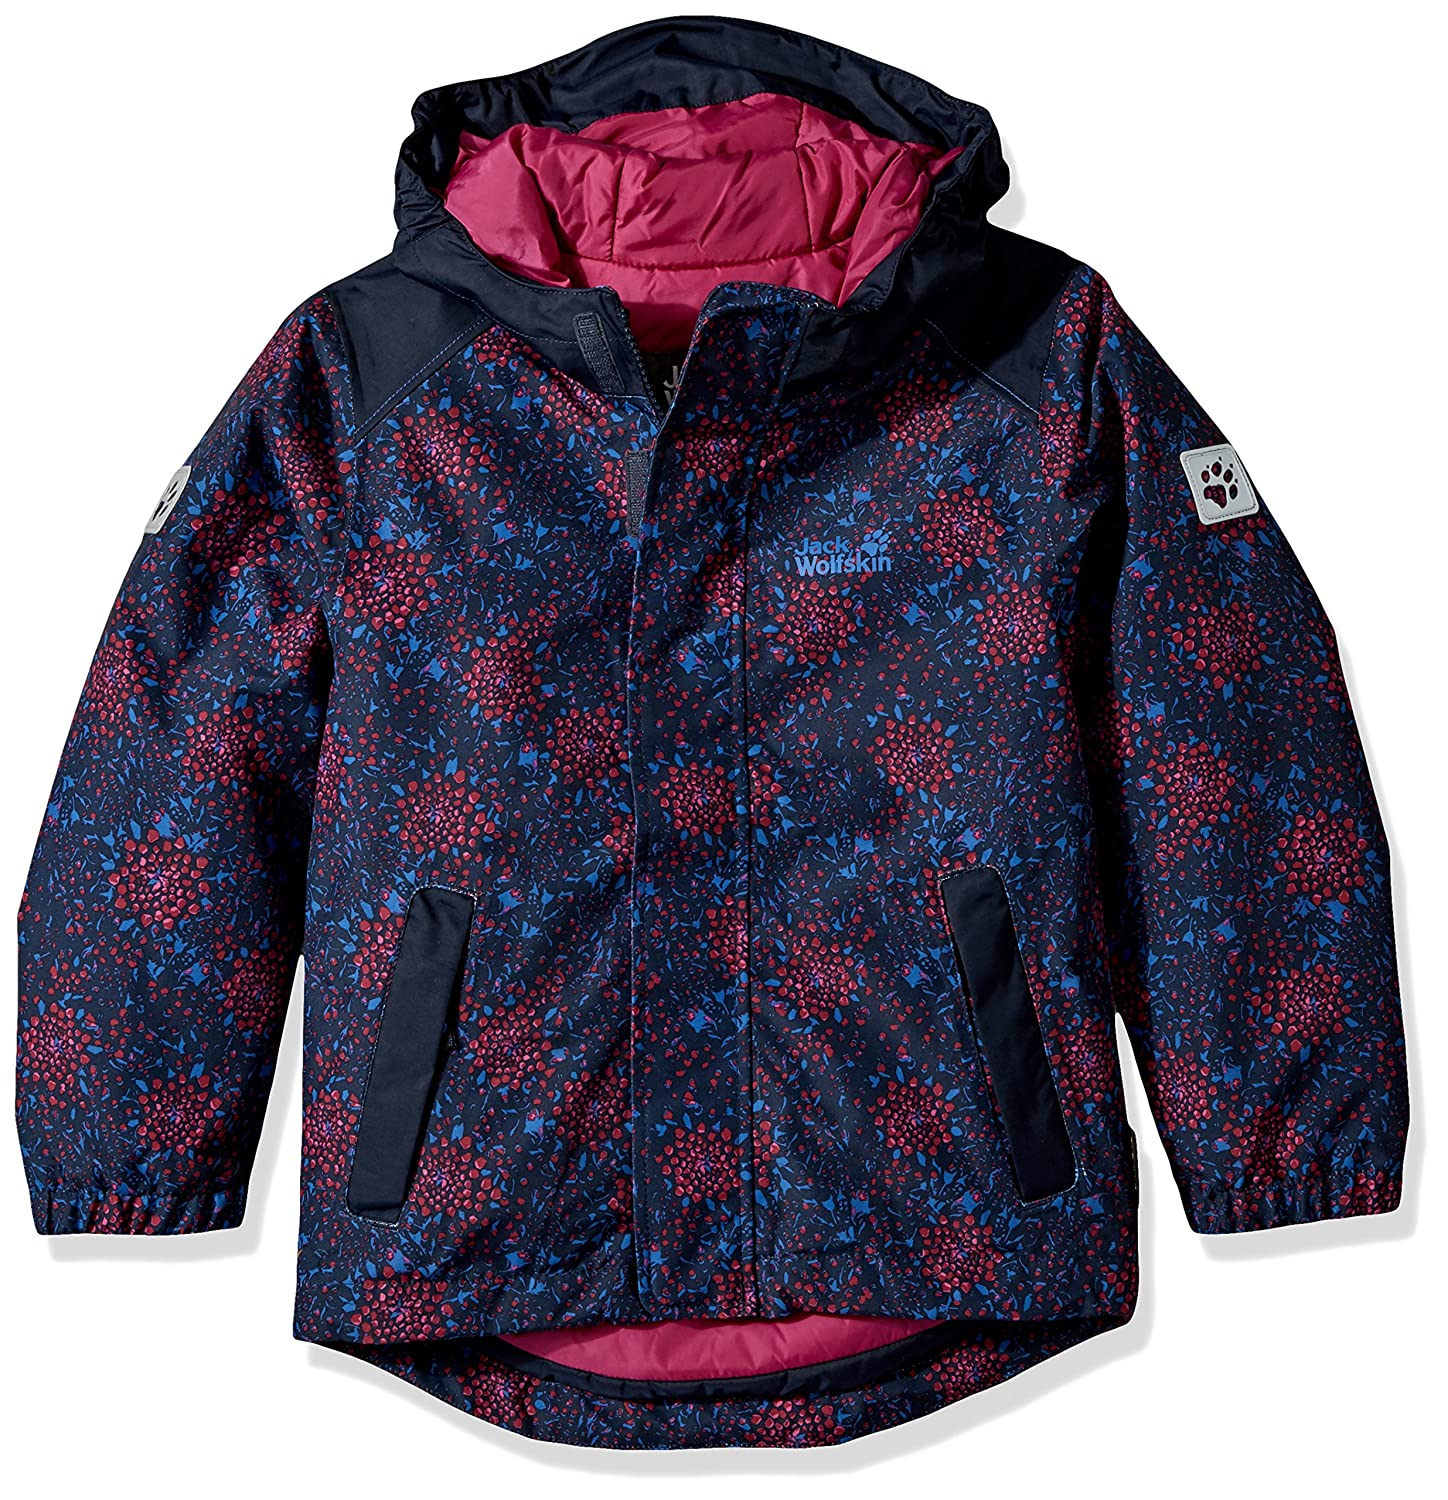 6f227909b4f Jack Wolfskin Girls Kajak Falls Printed Jacket: Amazon.co.uk: Clothing